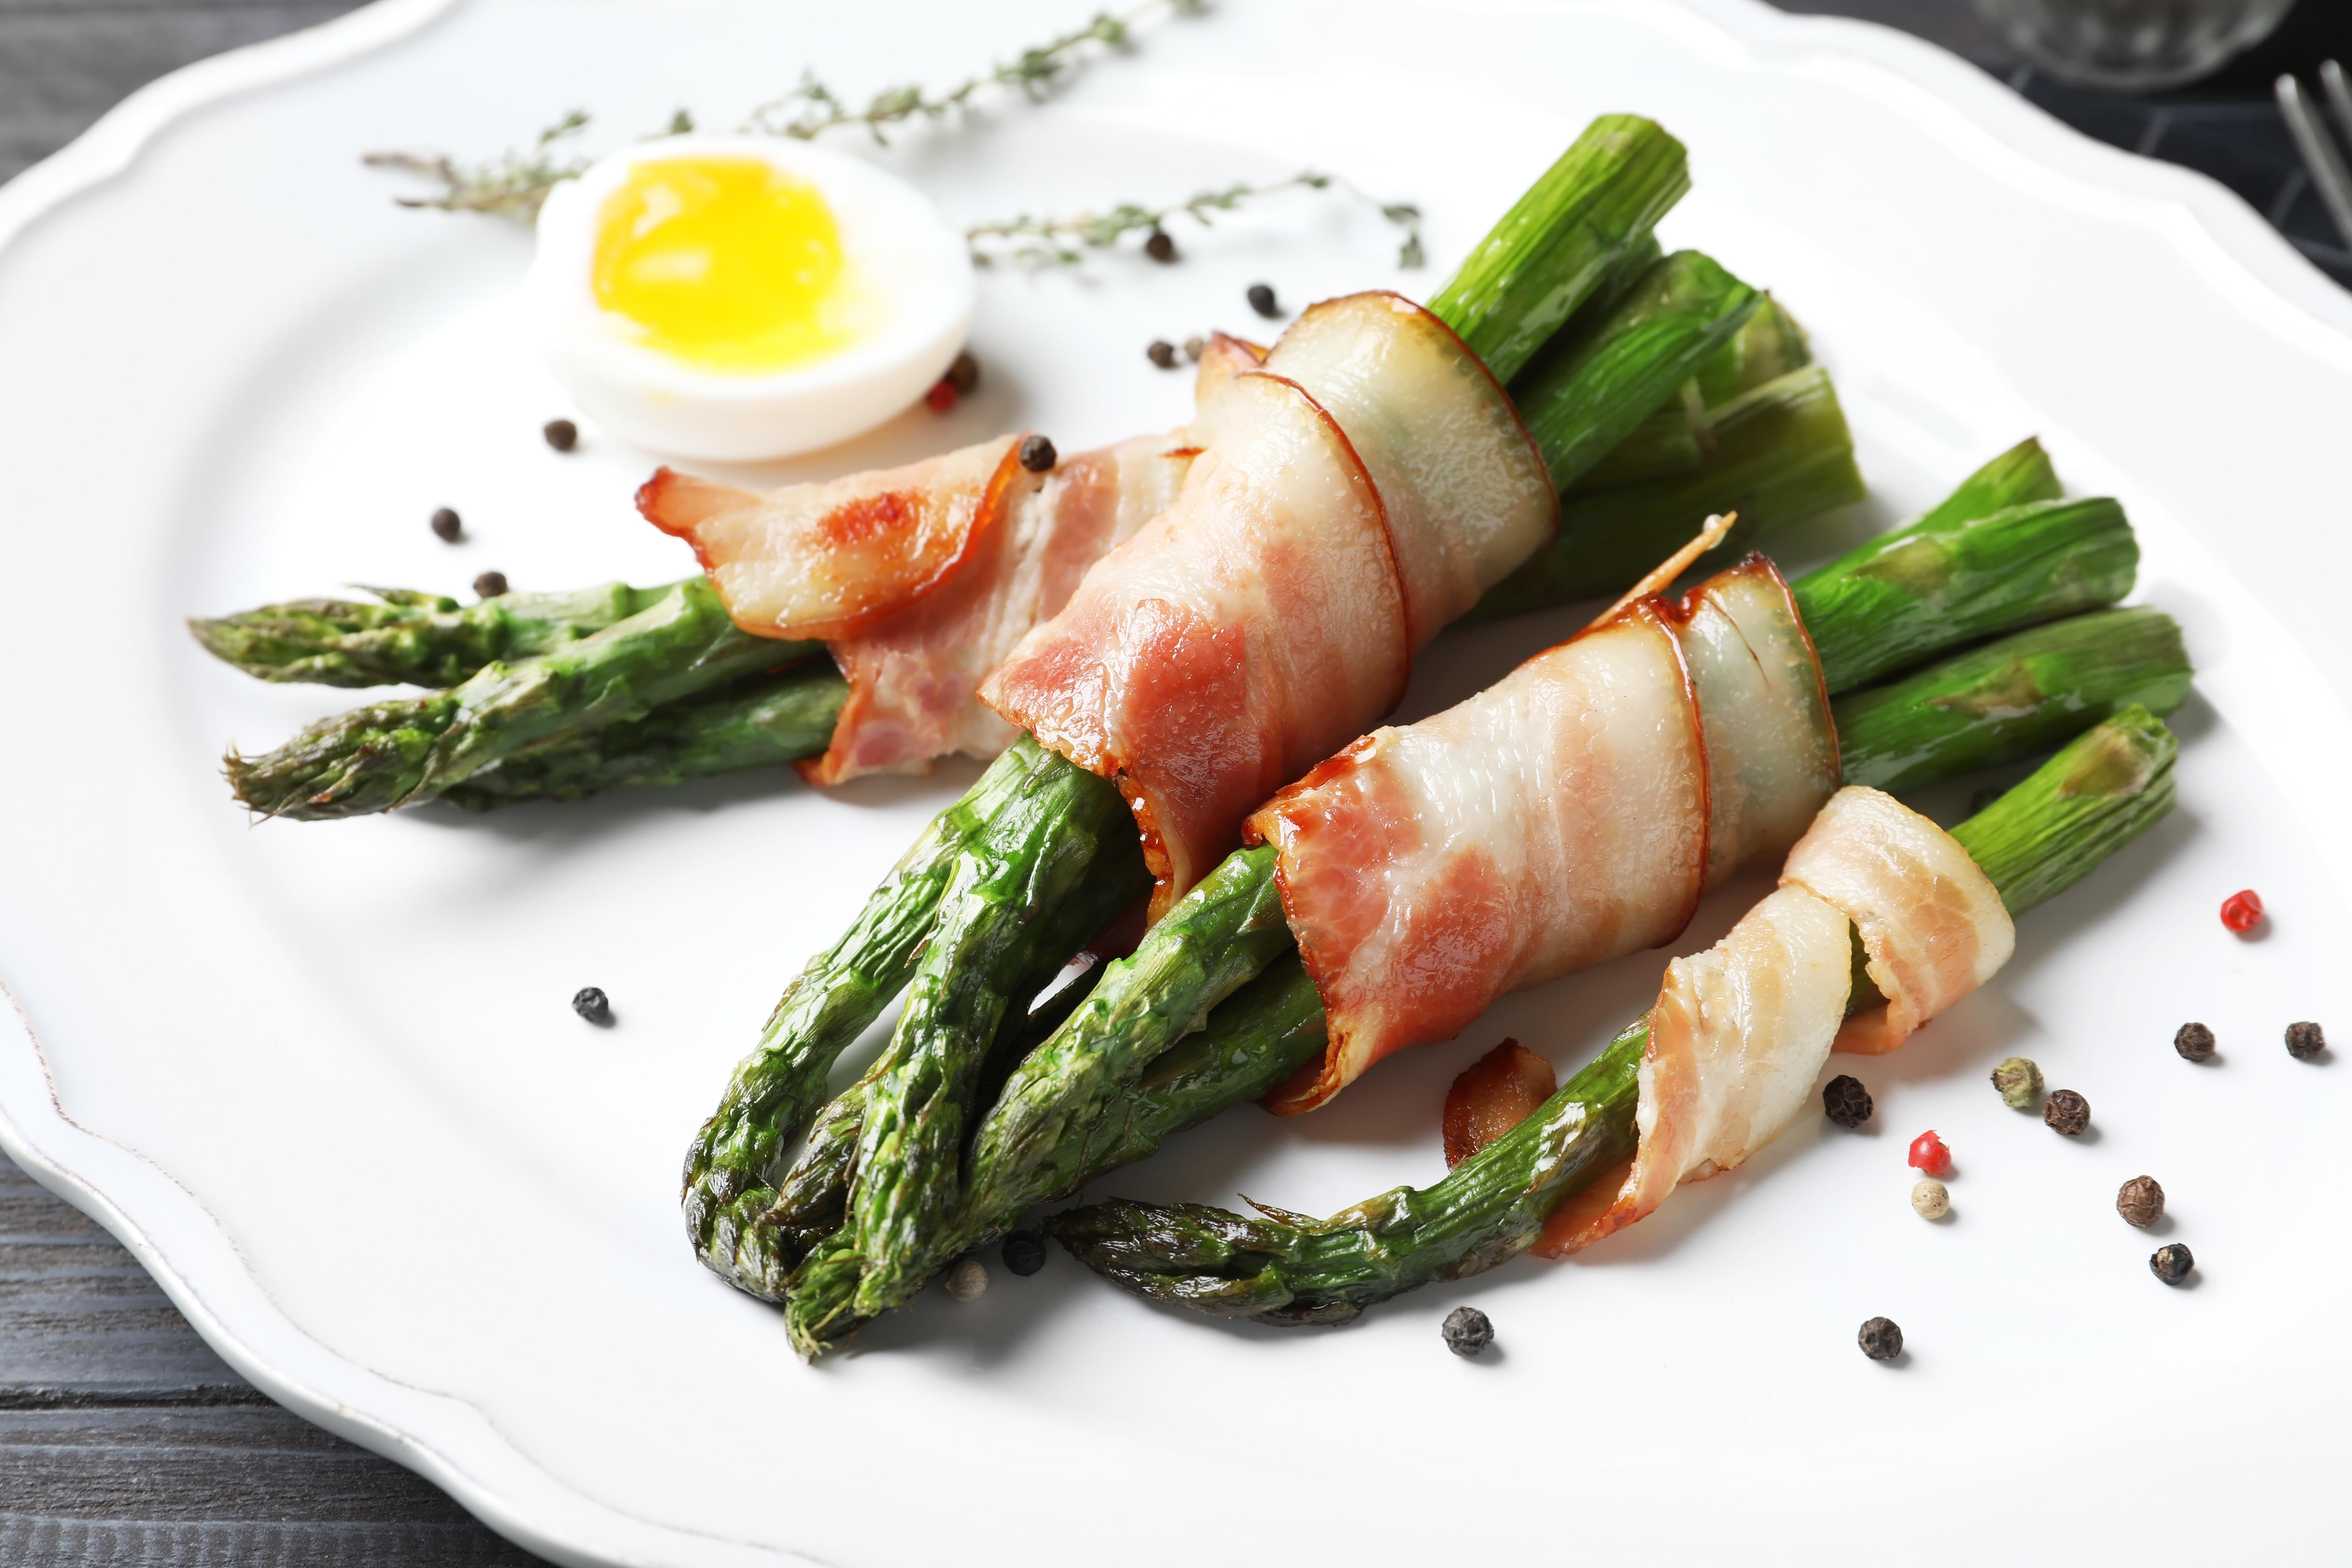 Bacon Wrapped Asparagus and Eggs